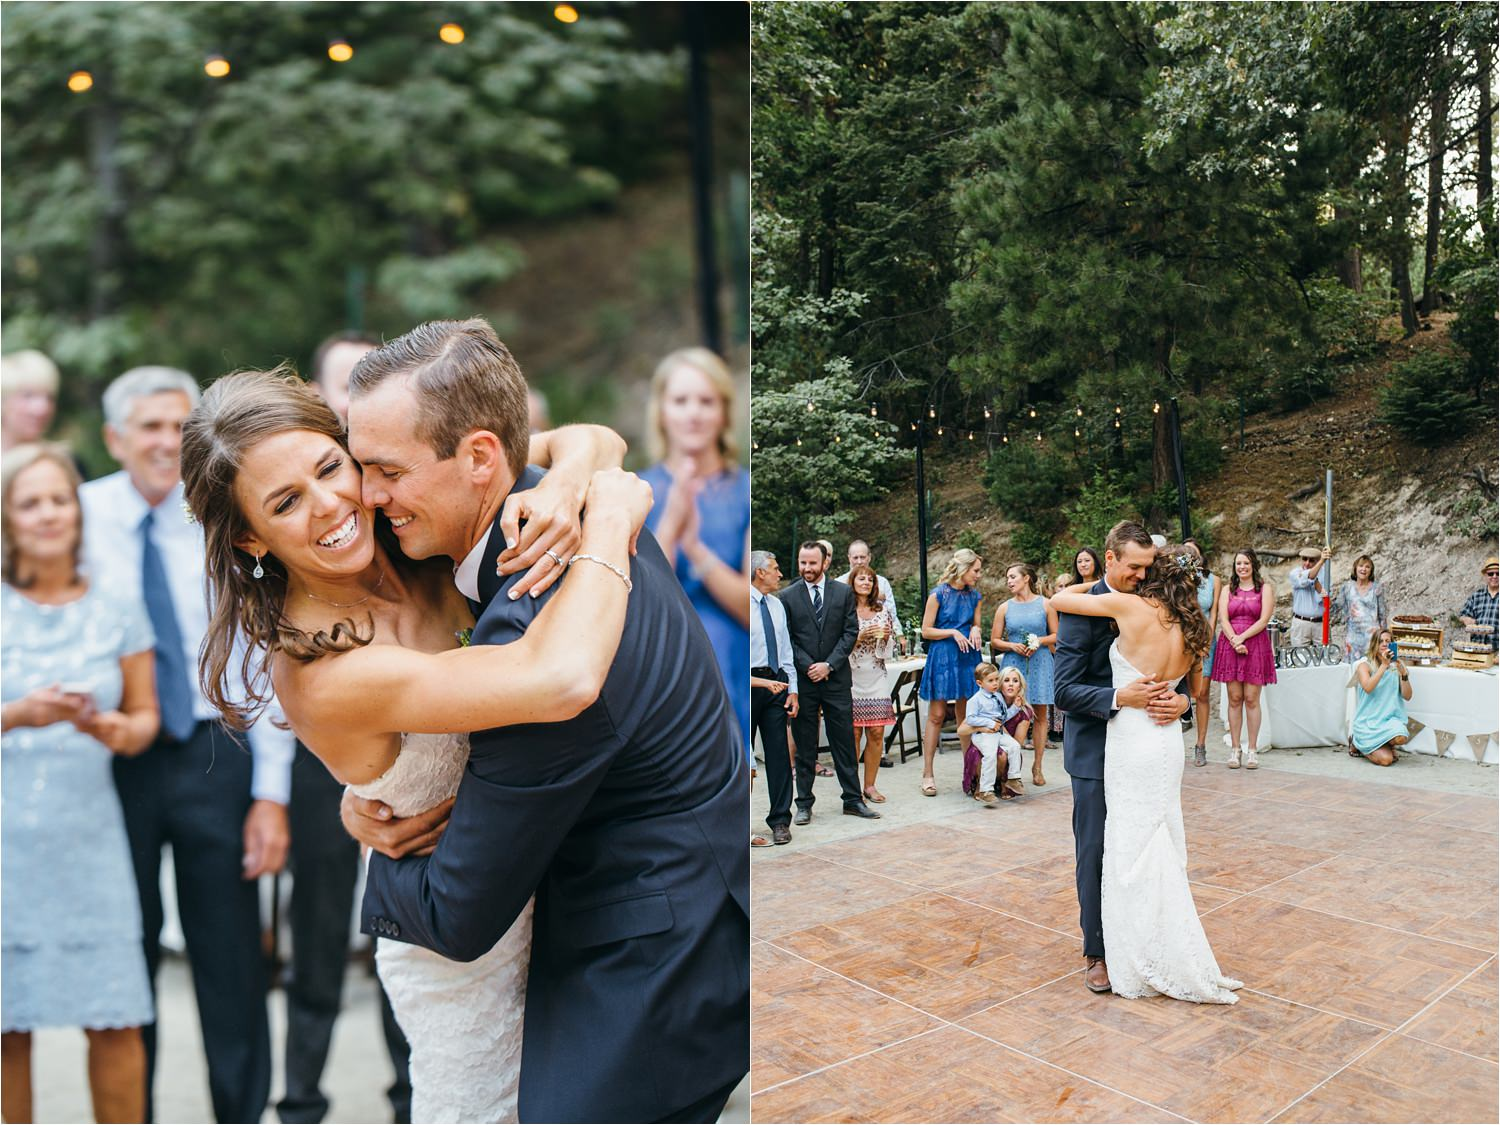 Super Sweet First Dance - First Dance Song - Dan & Shay - Wedding Reception in the Mountains - https://brittneyhannonphotography.com